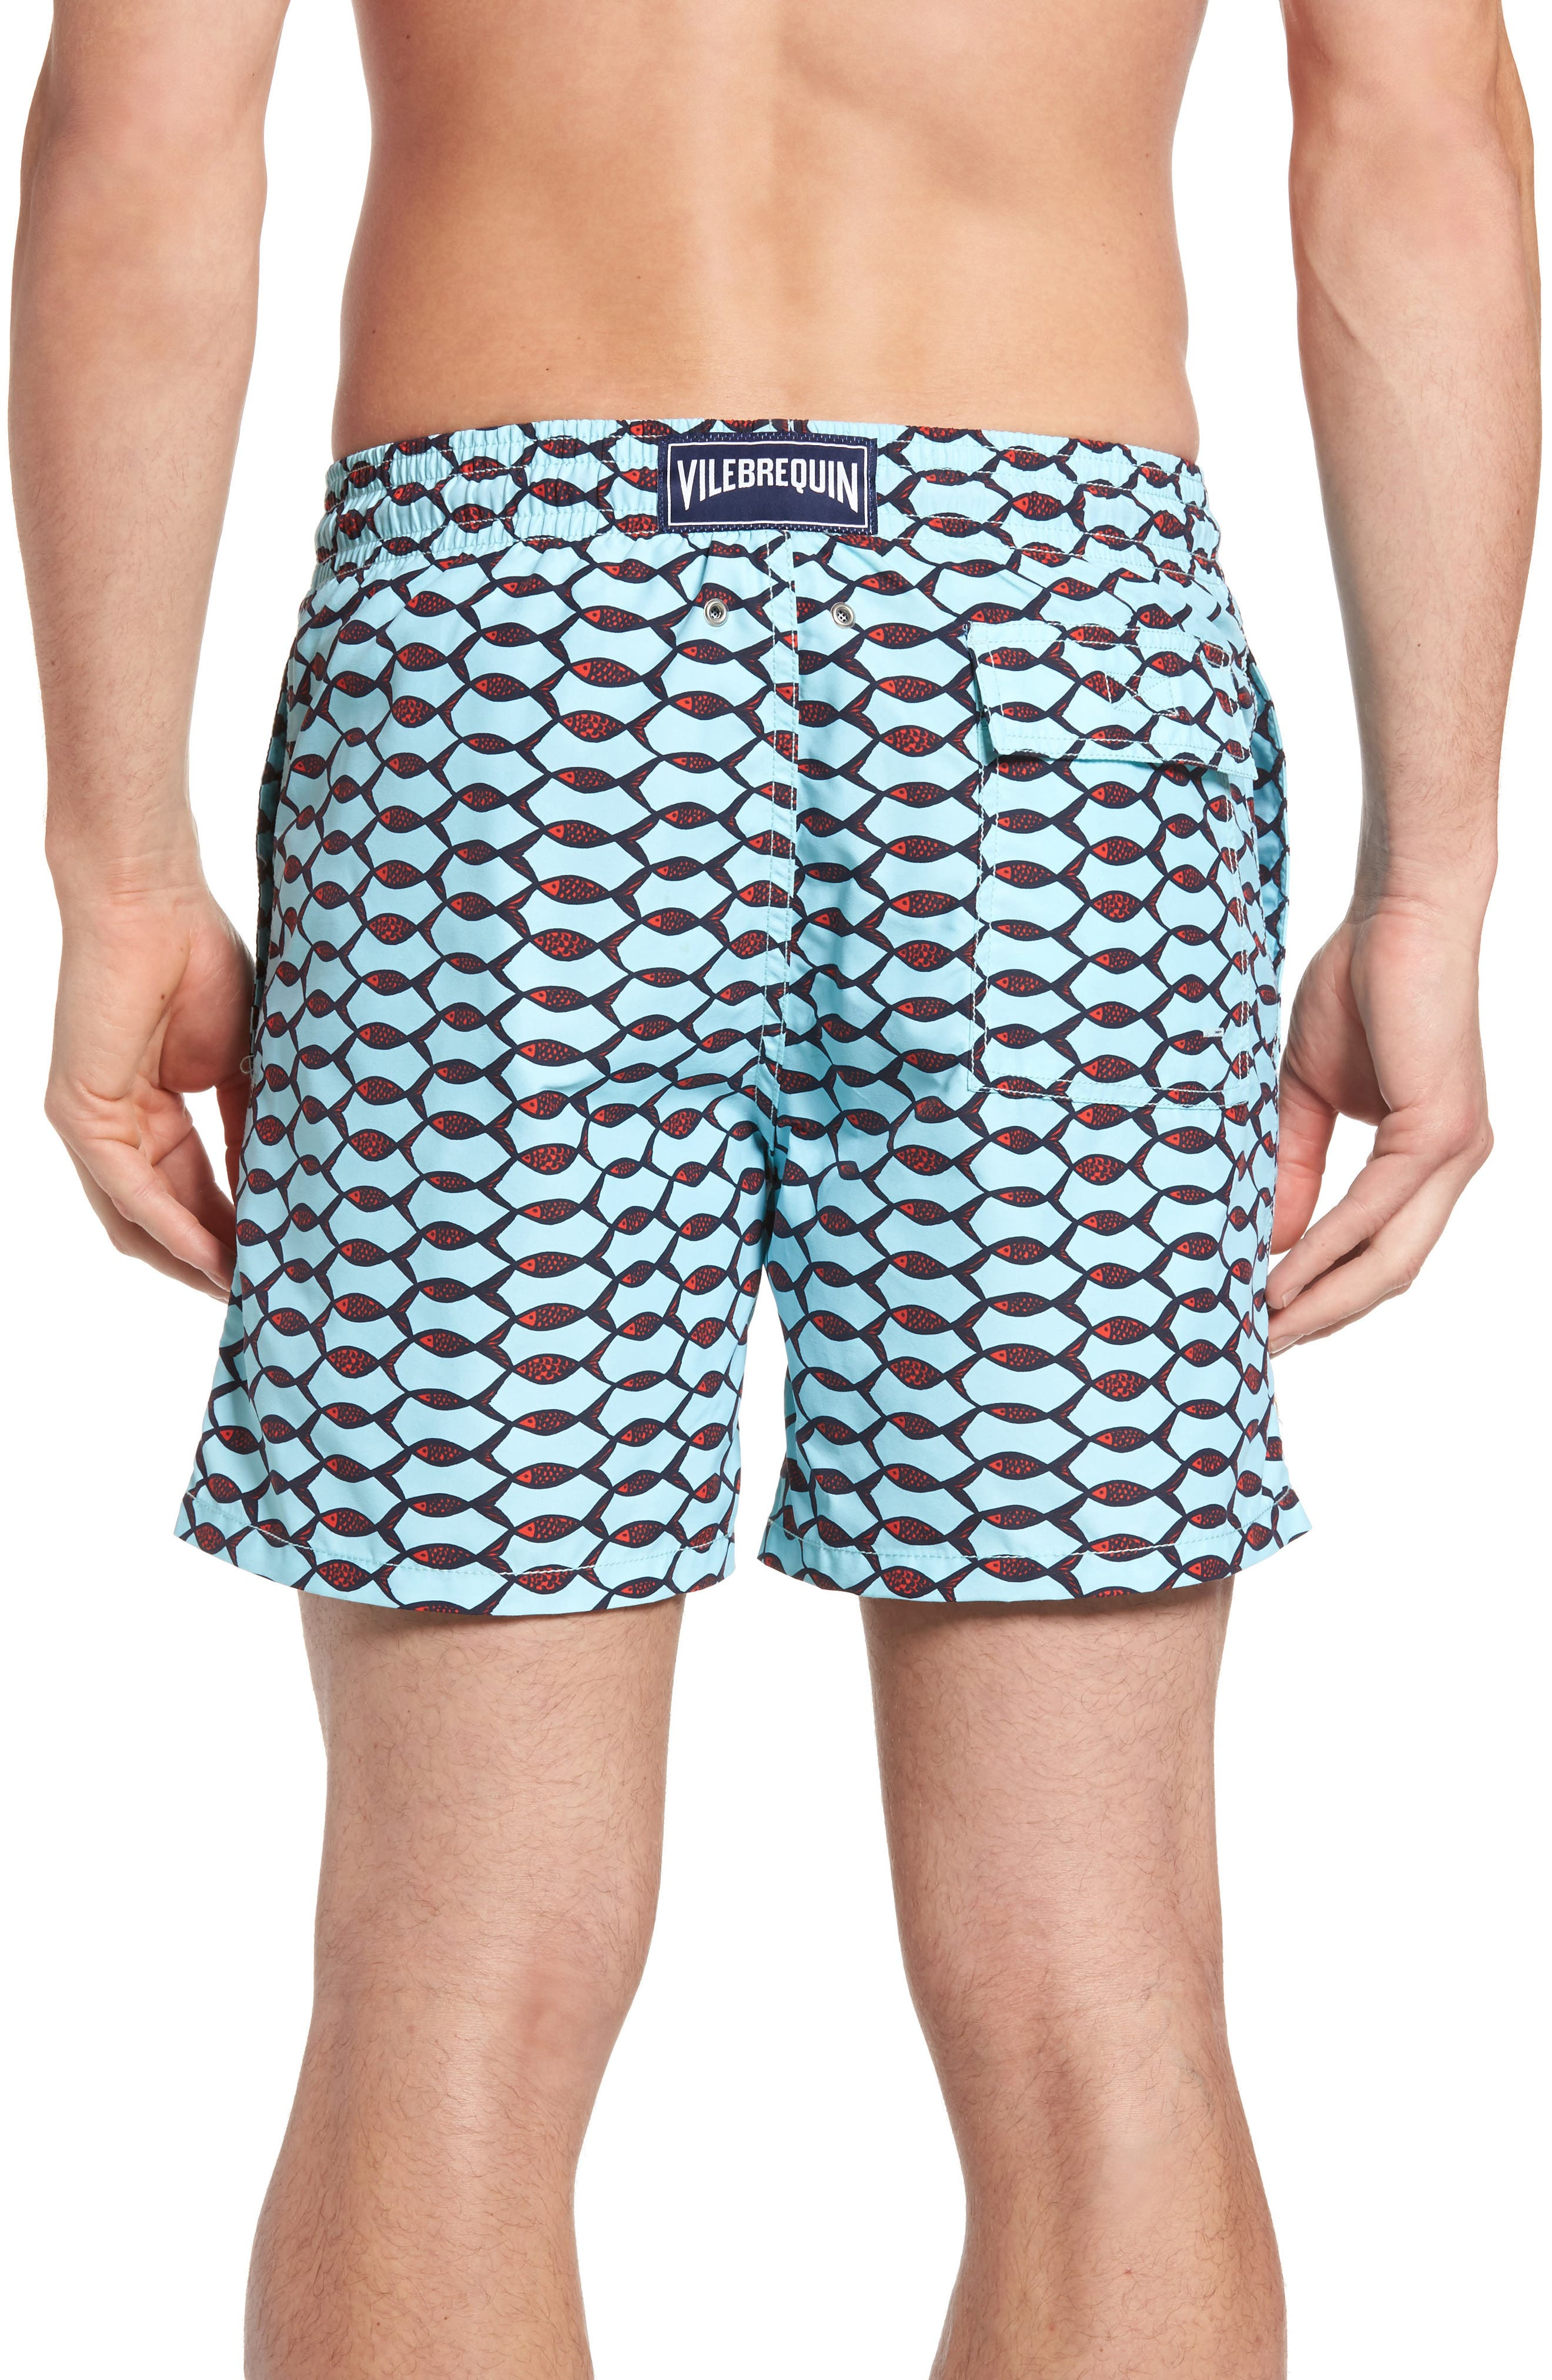 Moorea Fishnet Print Swim Trunks,                             Alternate thumbnail 2, color,                             FROSTED BLUE